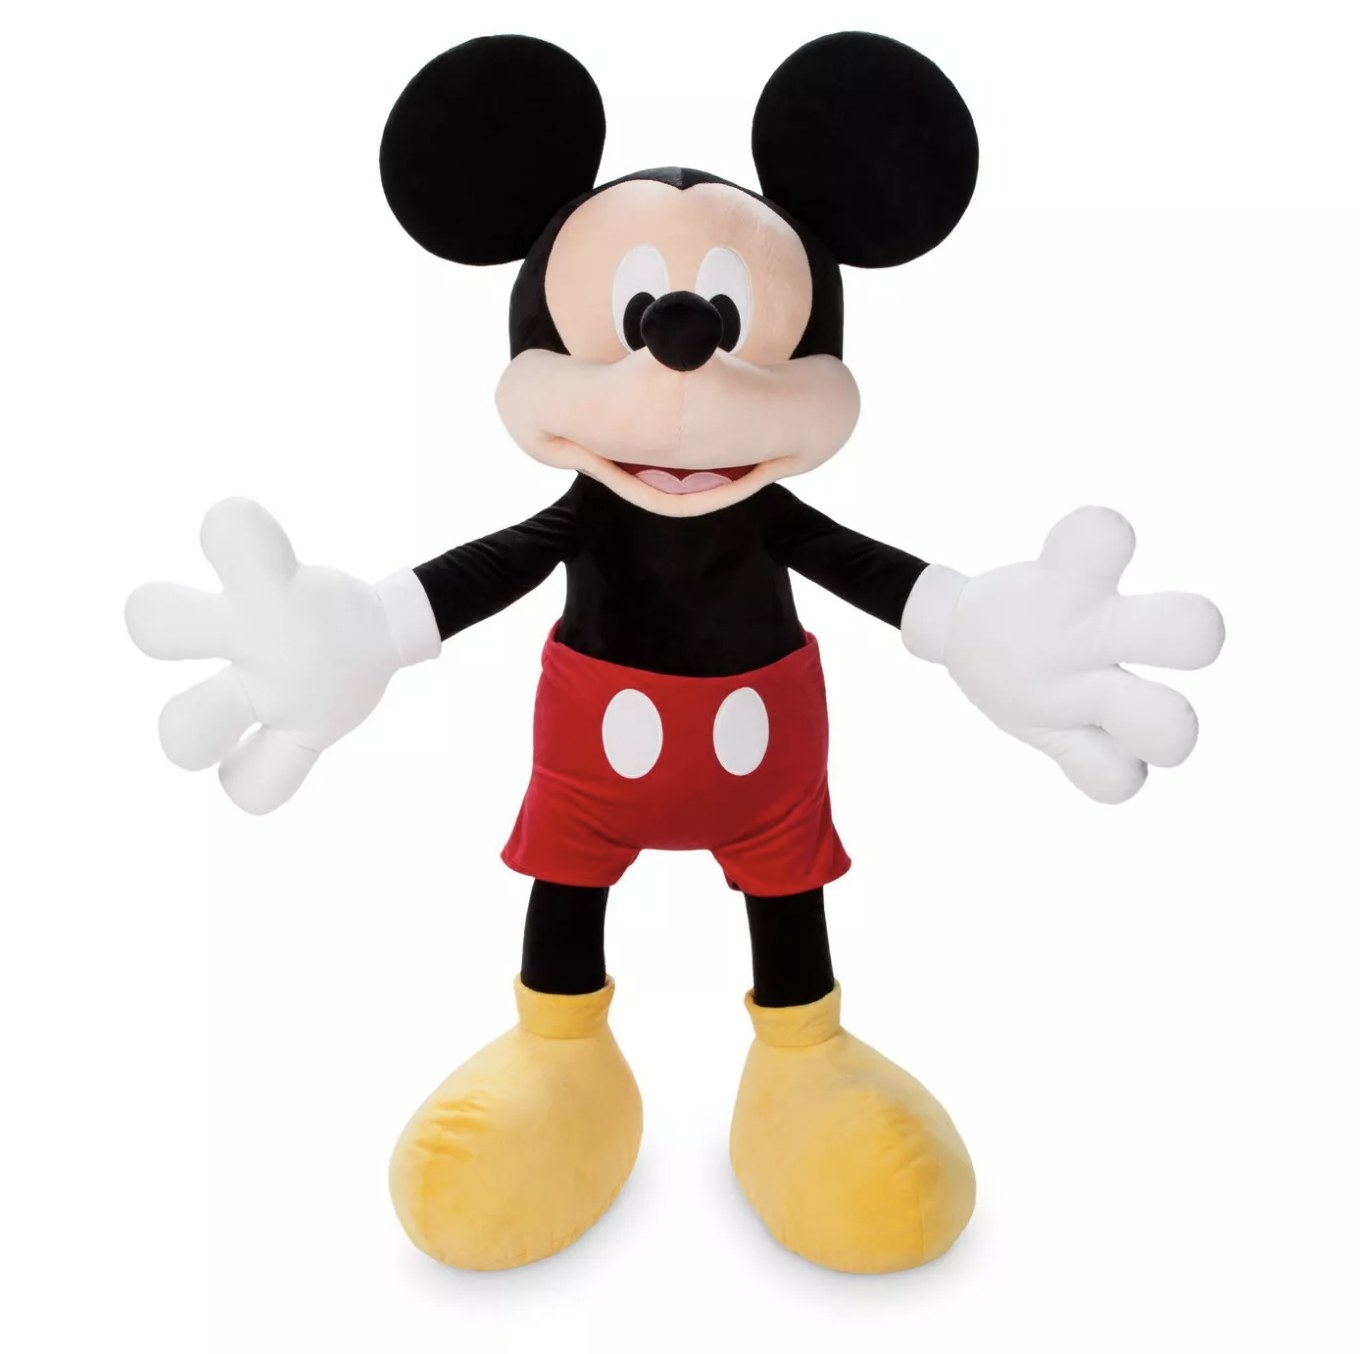 The Mickey Mouse plush